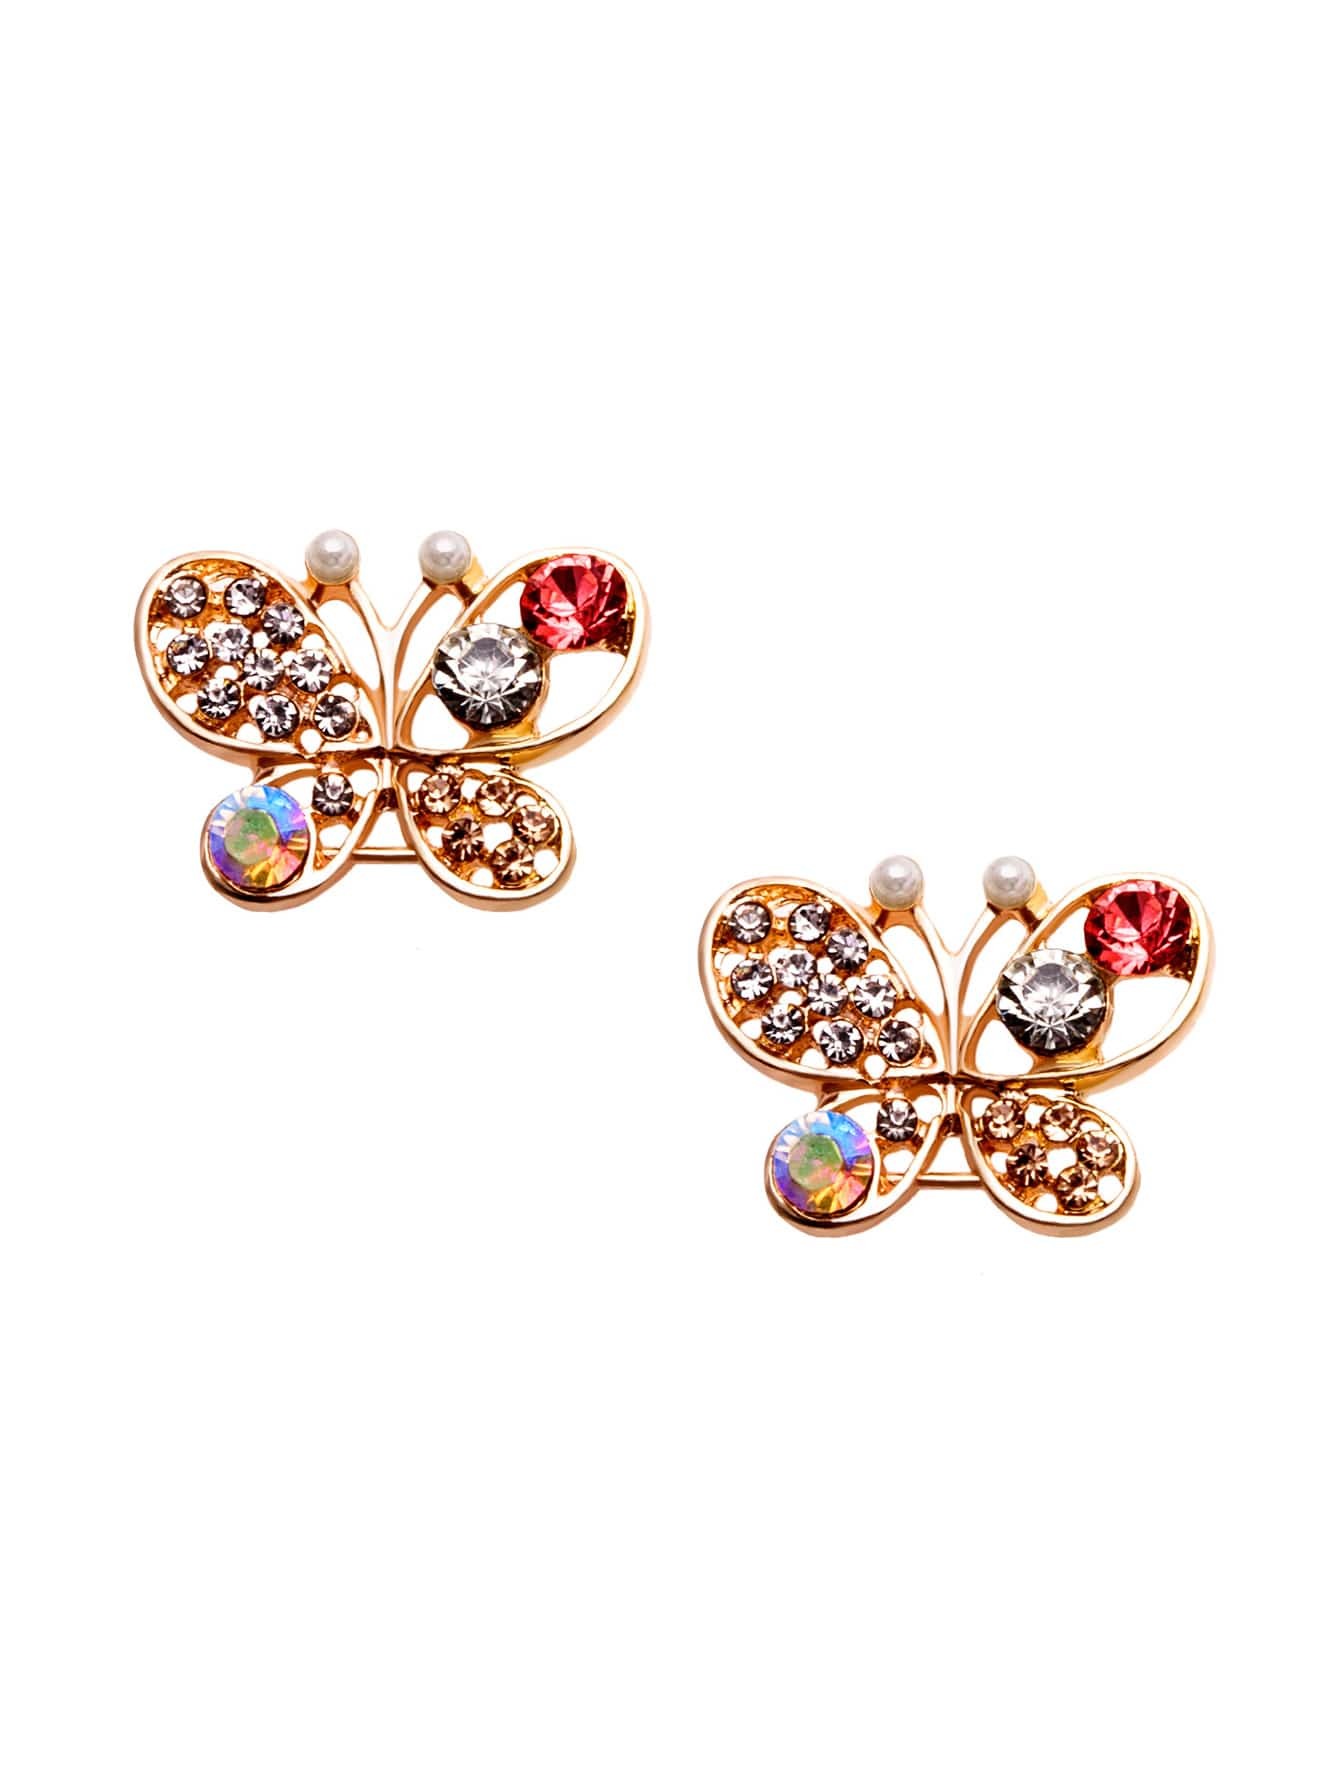 Gold Rhinestone Encrusted Cutout Butterfly Ear StudsGold Rhinestone Encrusted Cutout Butterfly Ear Studs<br><br>color: Colorful<br>size: None